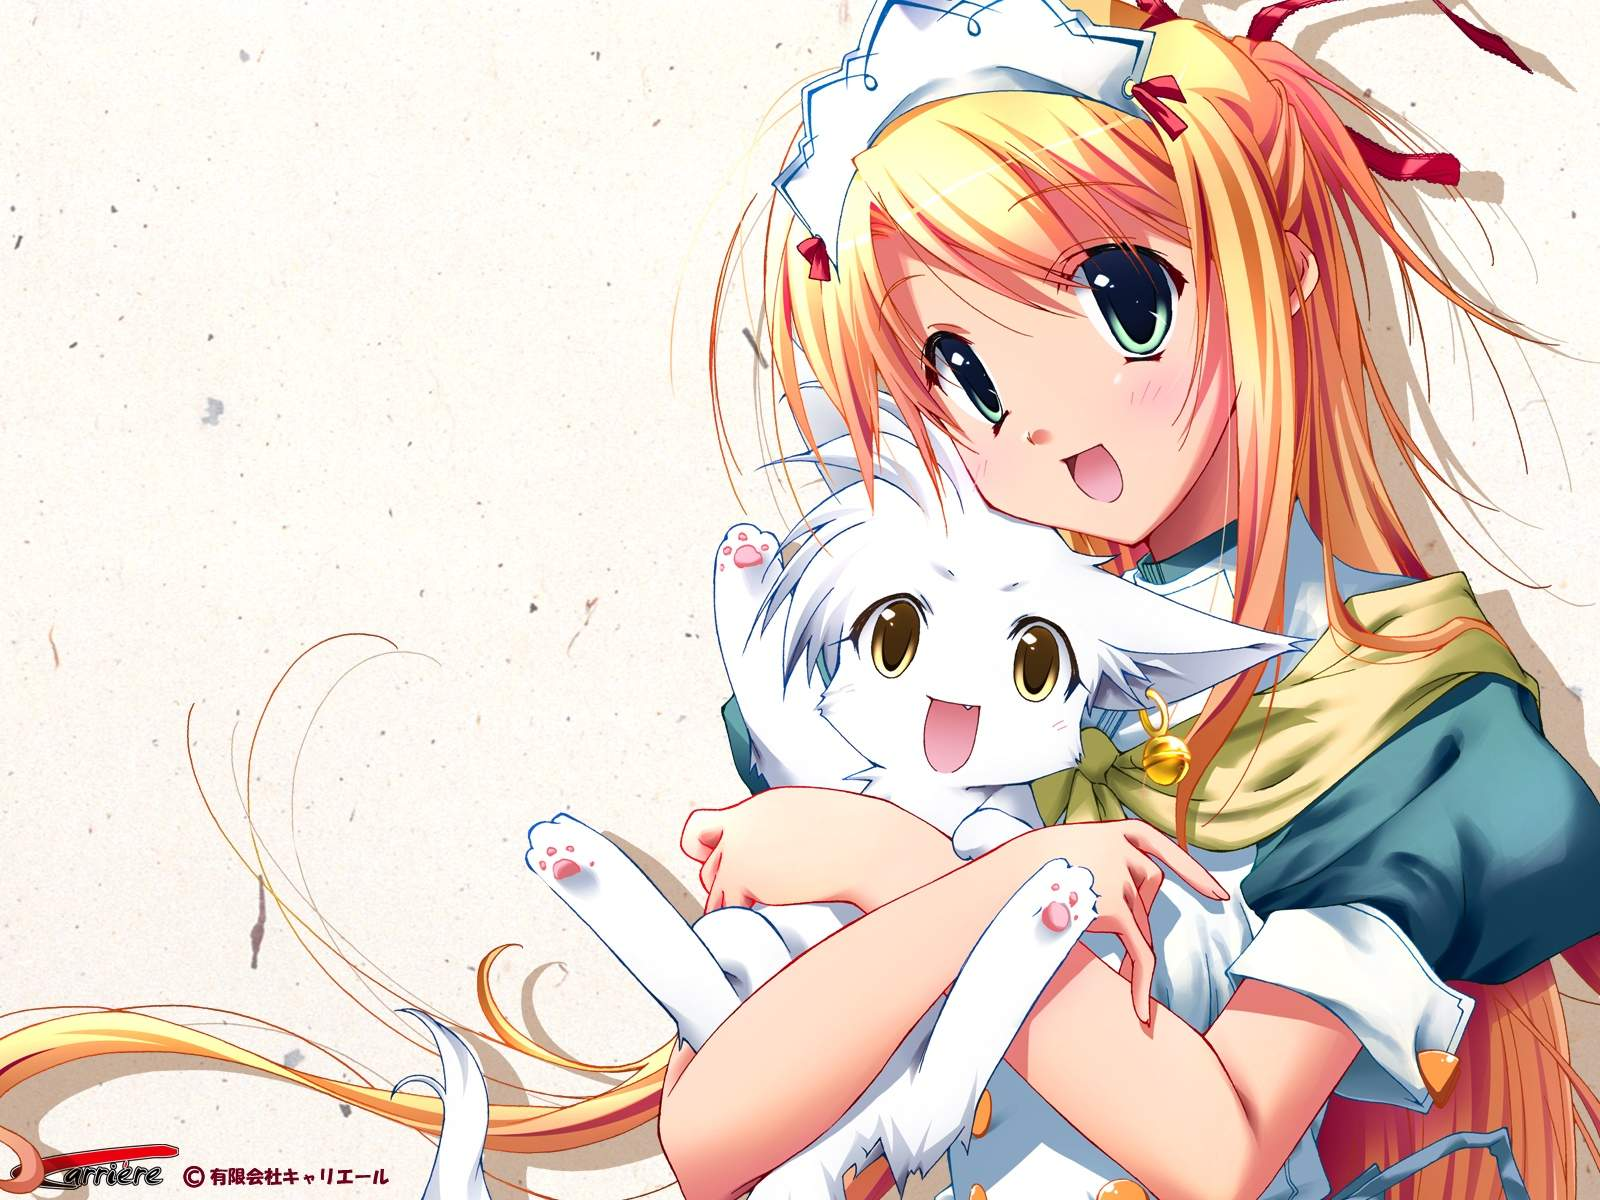 animal blonde_hair carriere fox green_eyes headdress koma_(carriere) logo long_hair sorune watermark white